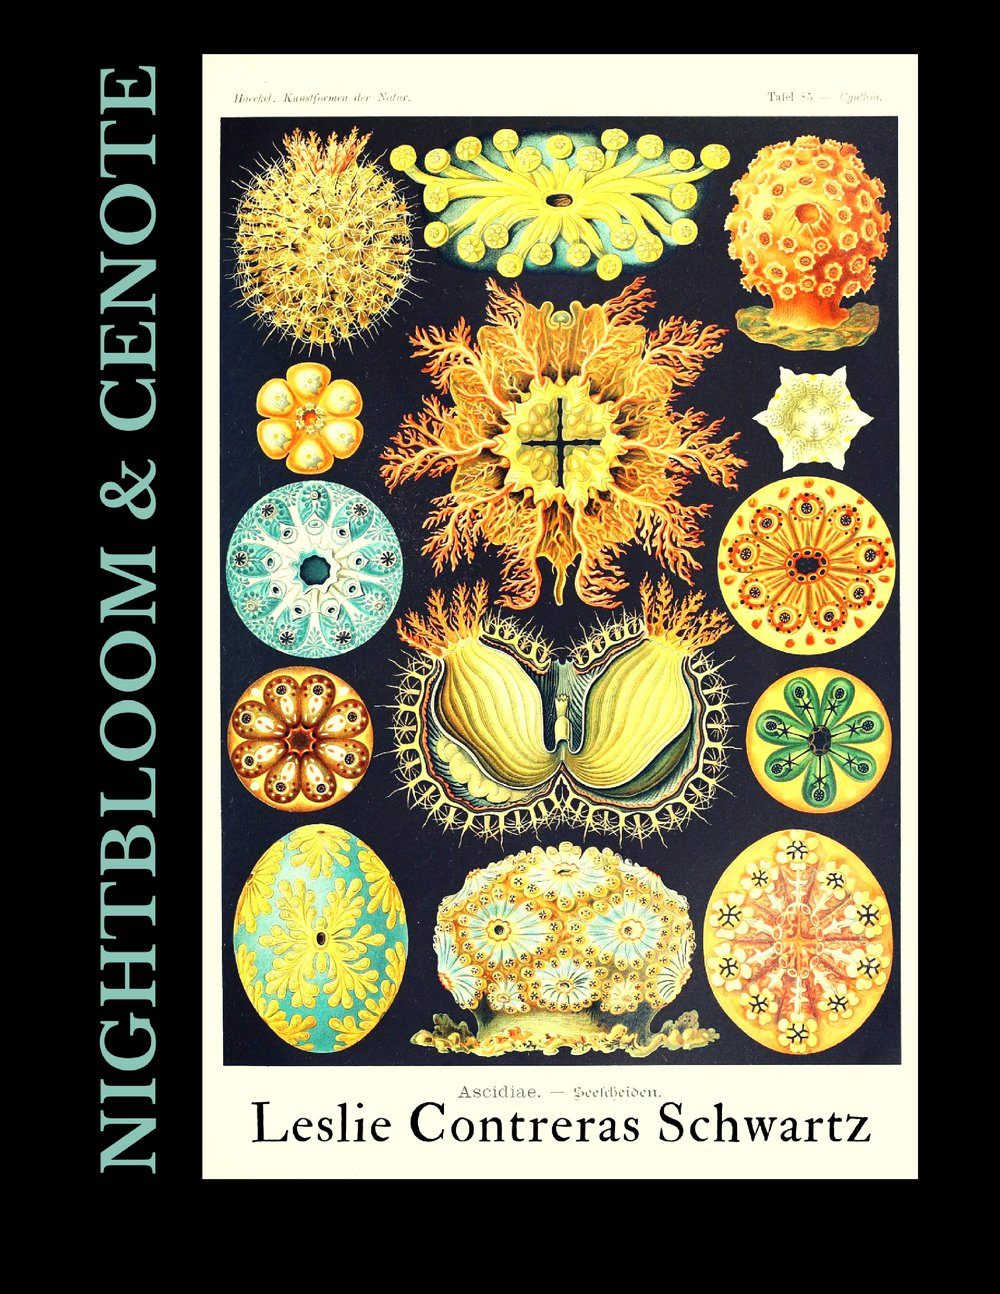 Coming Spring 2018  - In Nightbloom & Cenote Leslie Contreras Schwartz traverses a nighttime landscape with eyes purposefully wide open. She descends into